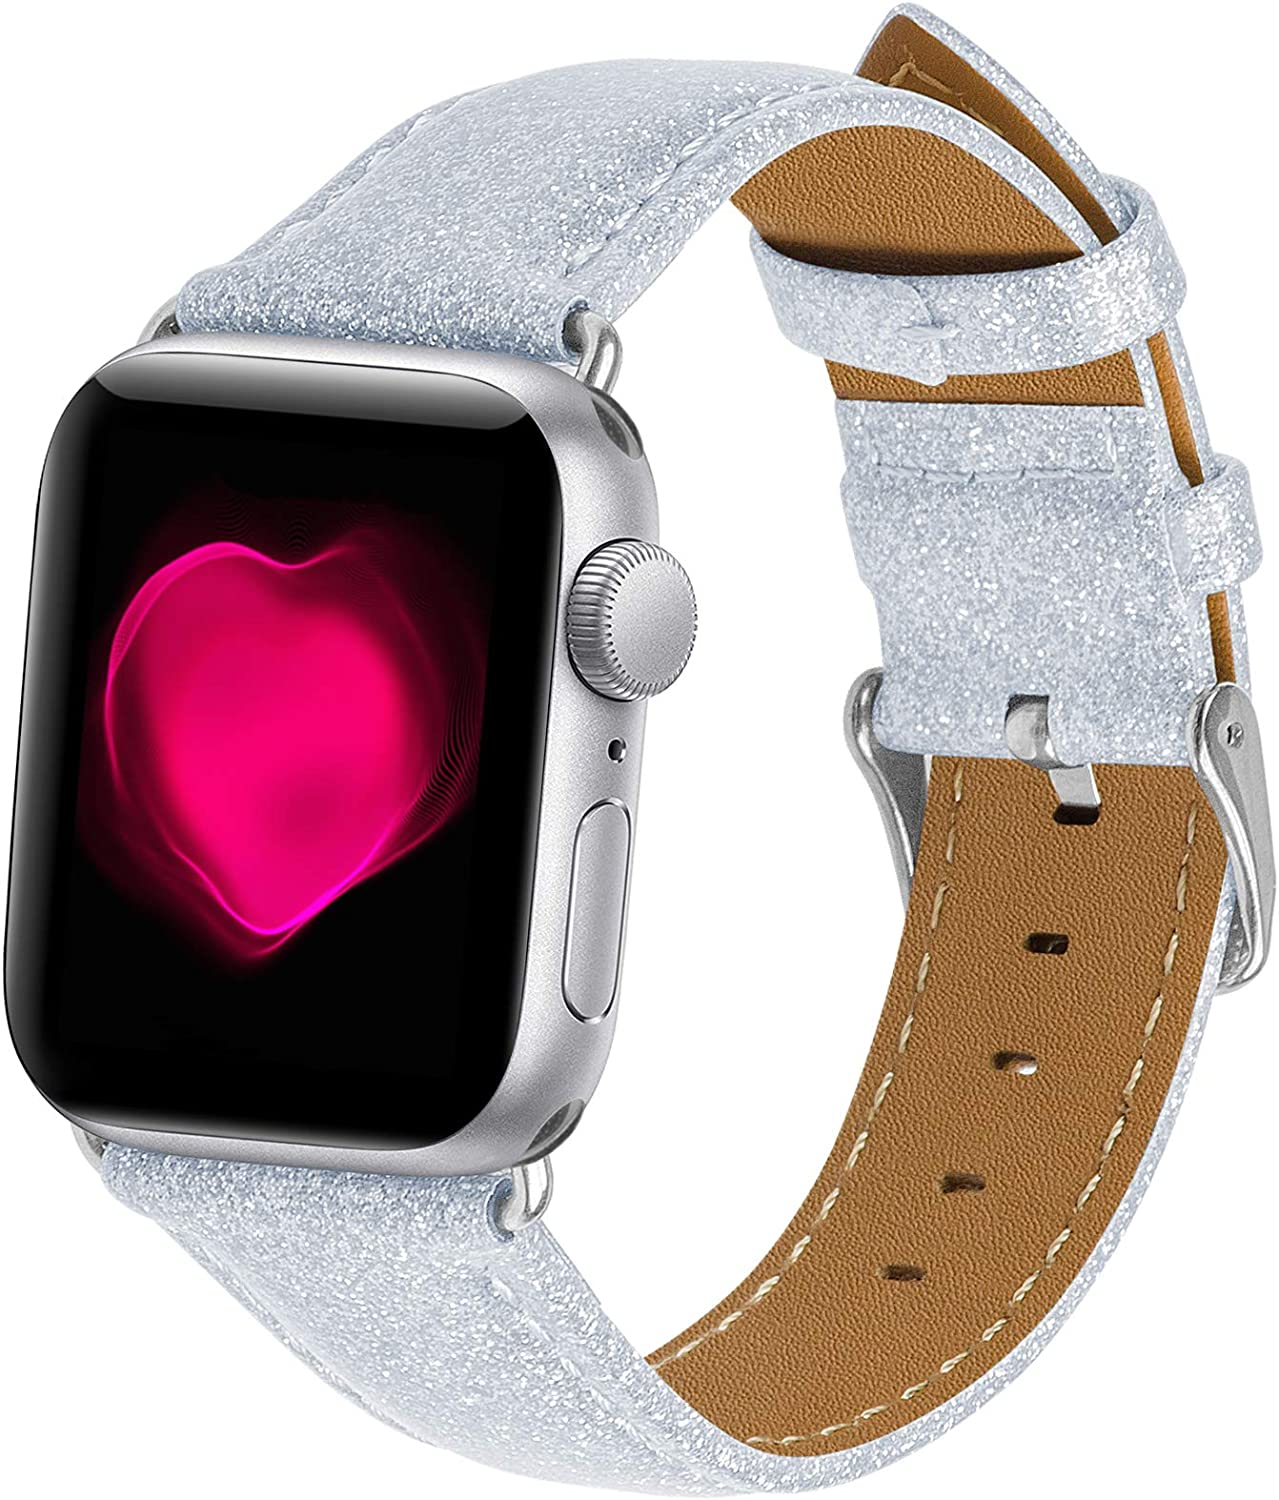 OMECKY Bling Watch Strap Compatible with Glitter iWatch Bands Series 6 / 5 / 4, SE (40mm) Series 3 / 2 / 1 (38mm), Silver